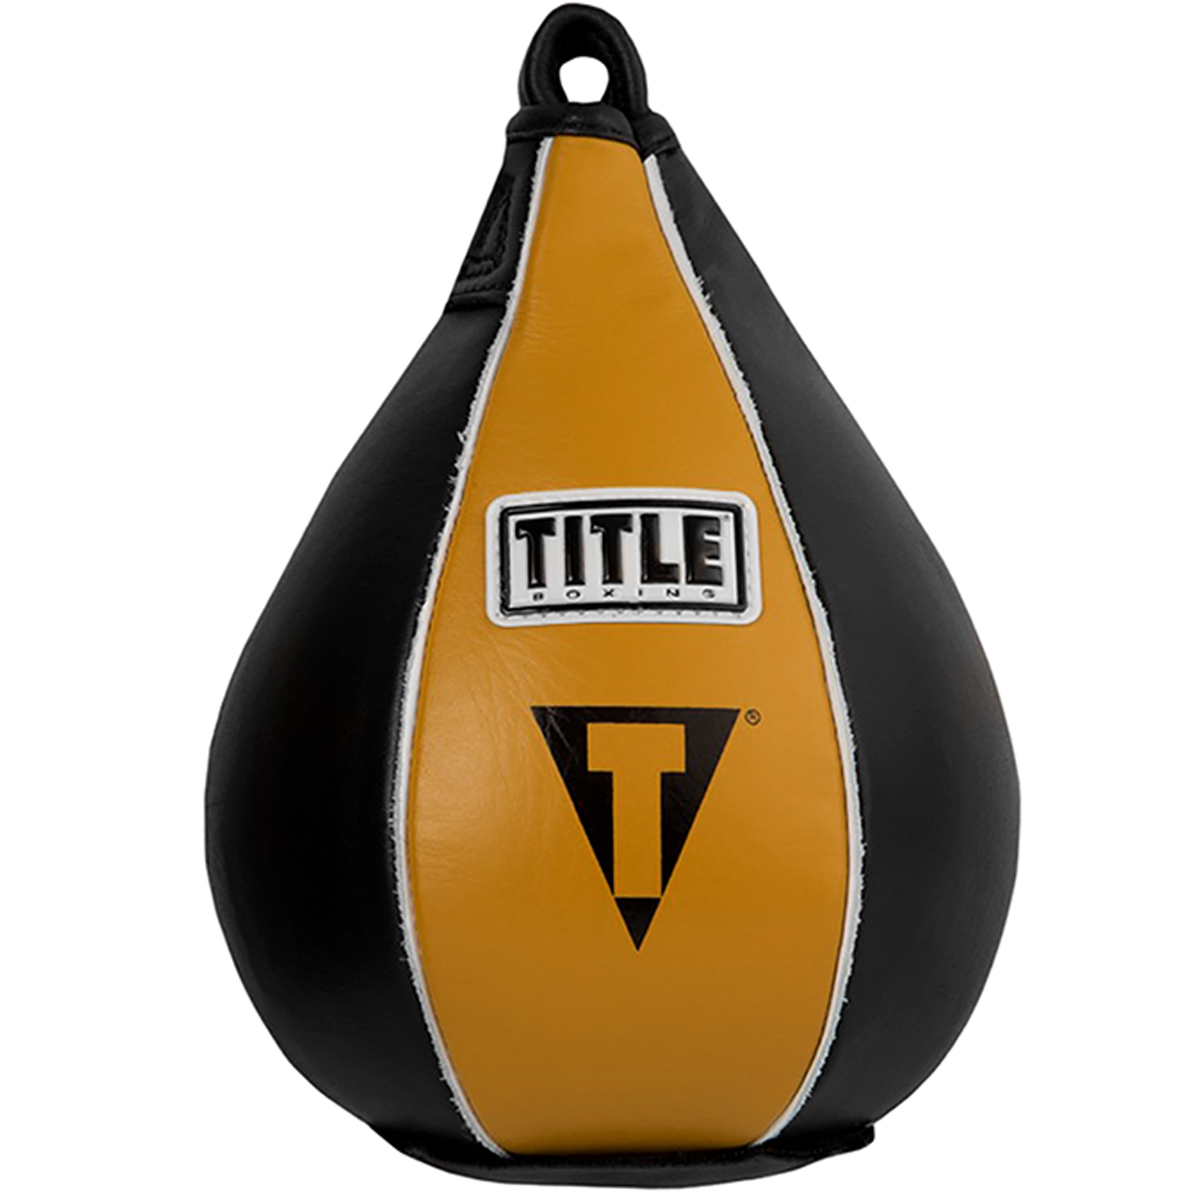 6b1123bcd884 Title Boxing Quik-Tek Super Punch Training Speed Bag - XS